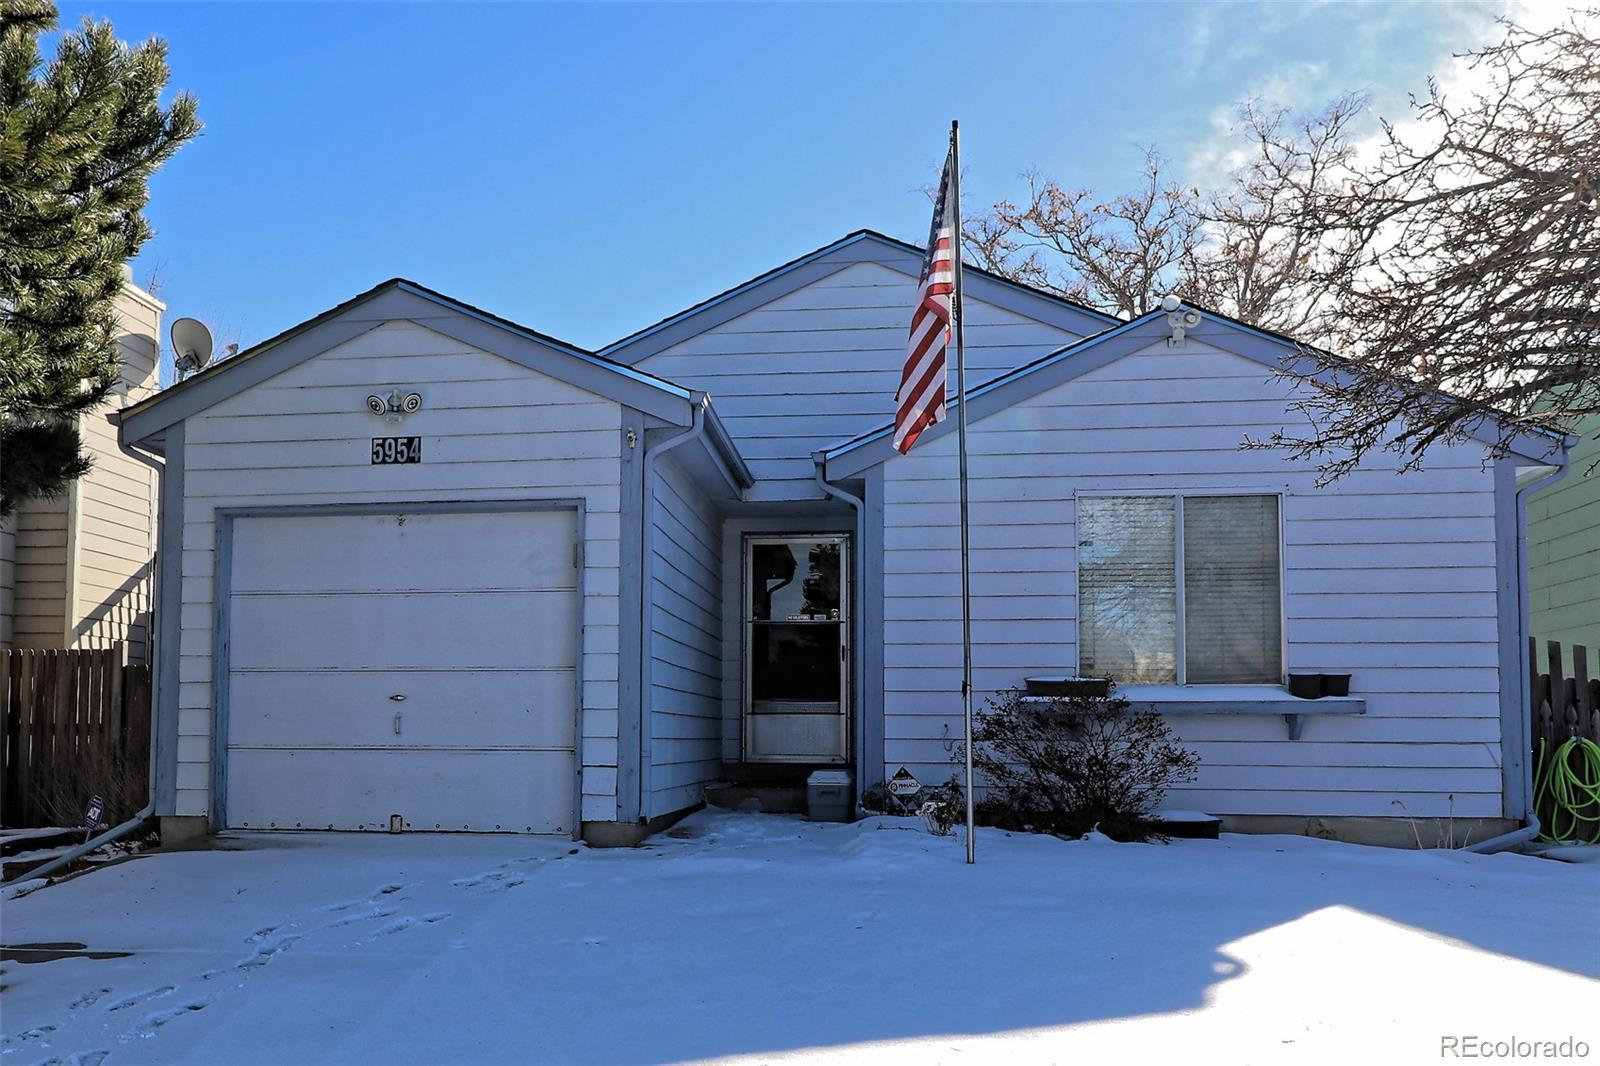 5954 W 77th Drive, Westminster, CO 80003 - #: 8326378